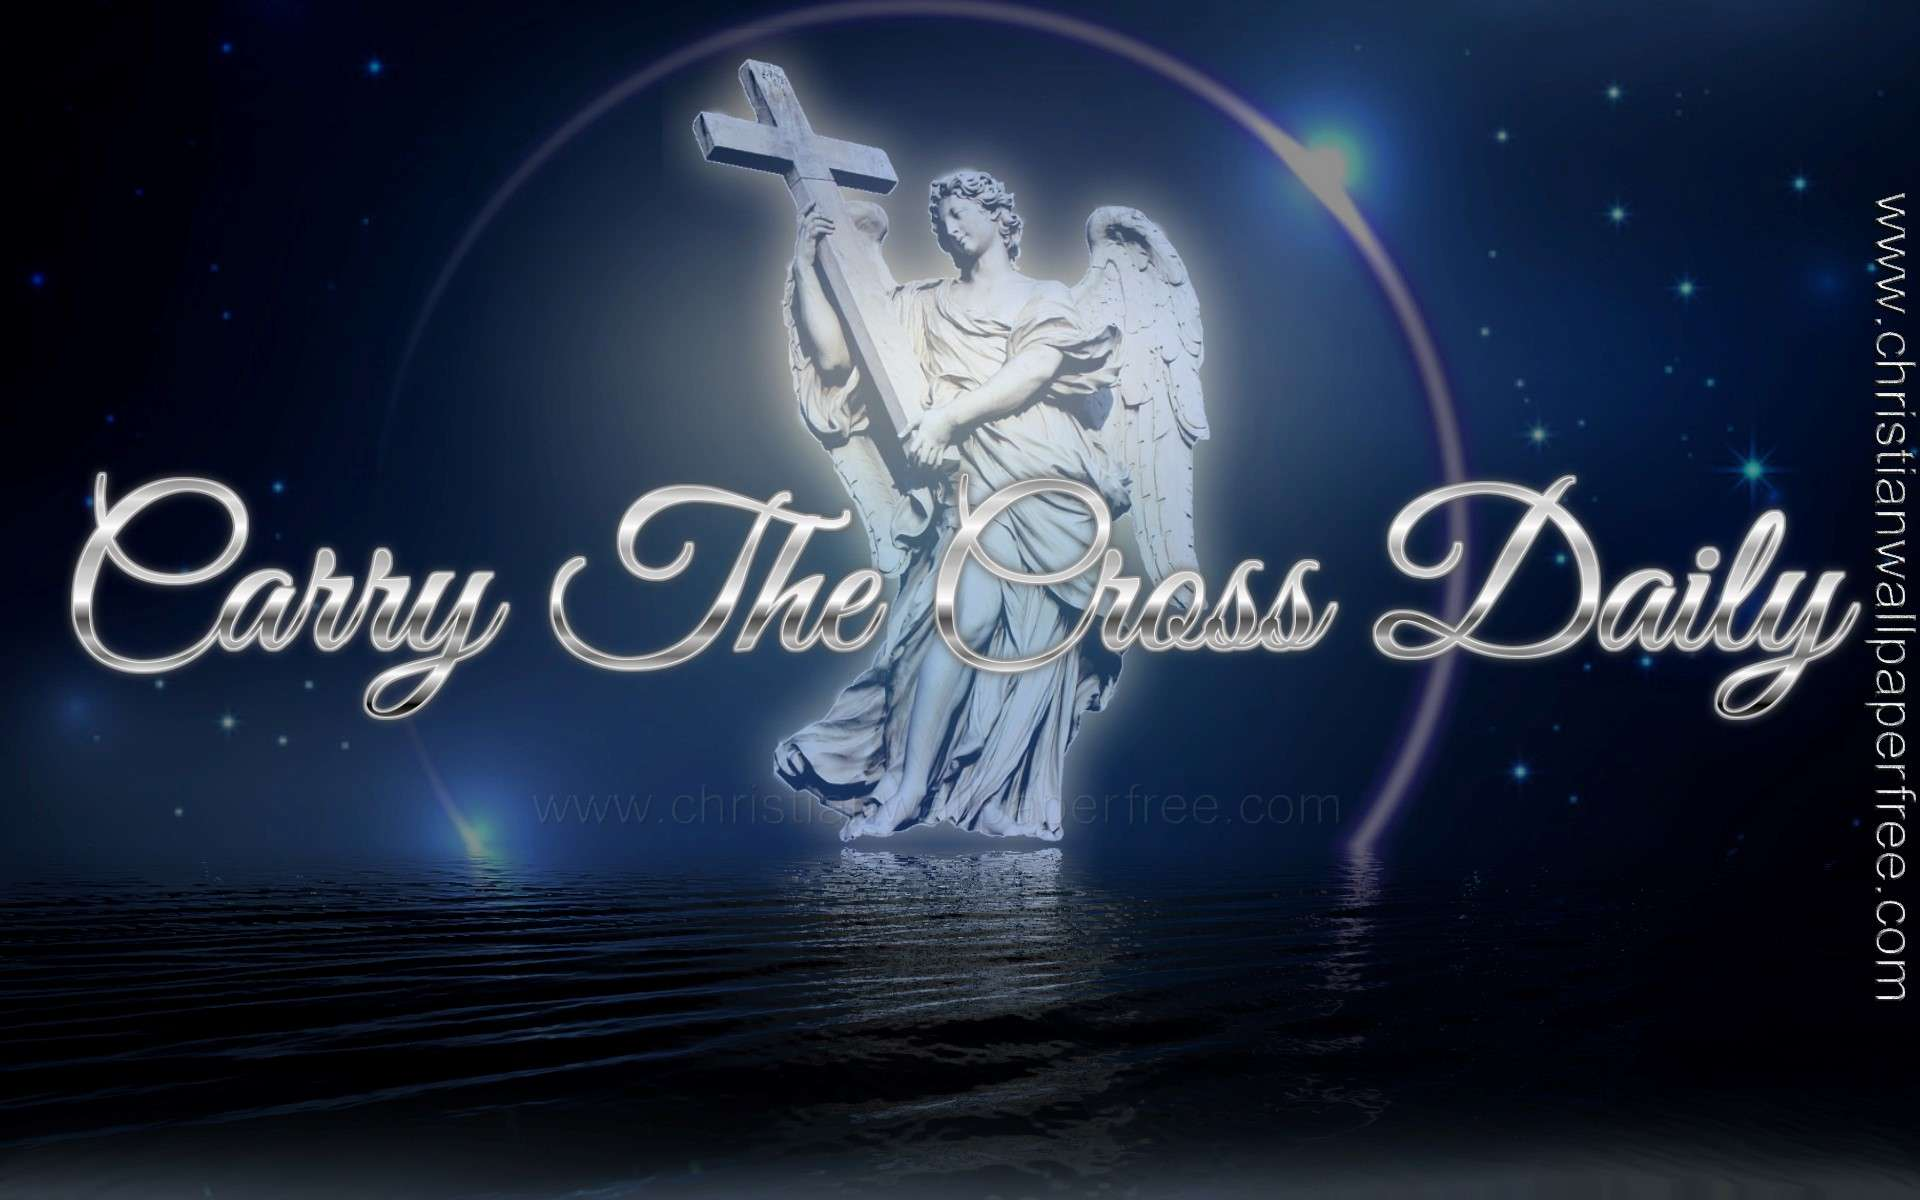 Carry the Cross Daily